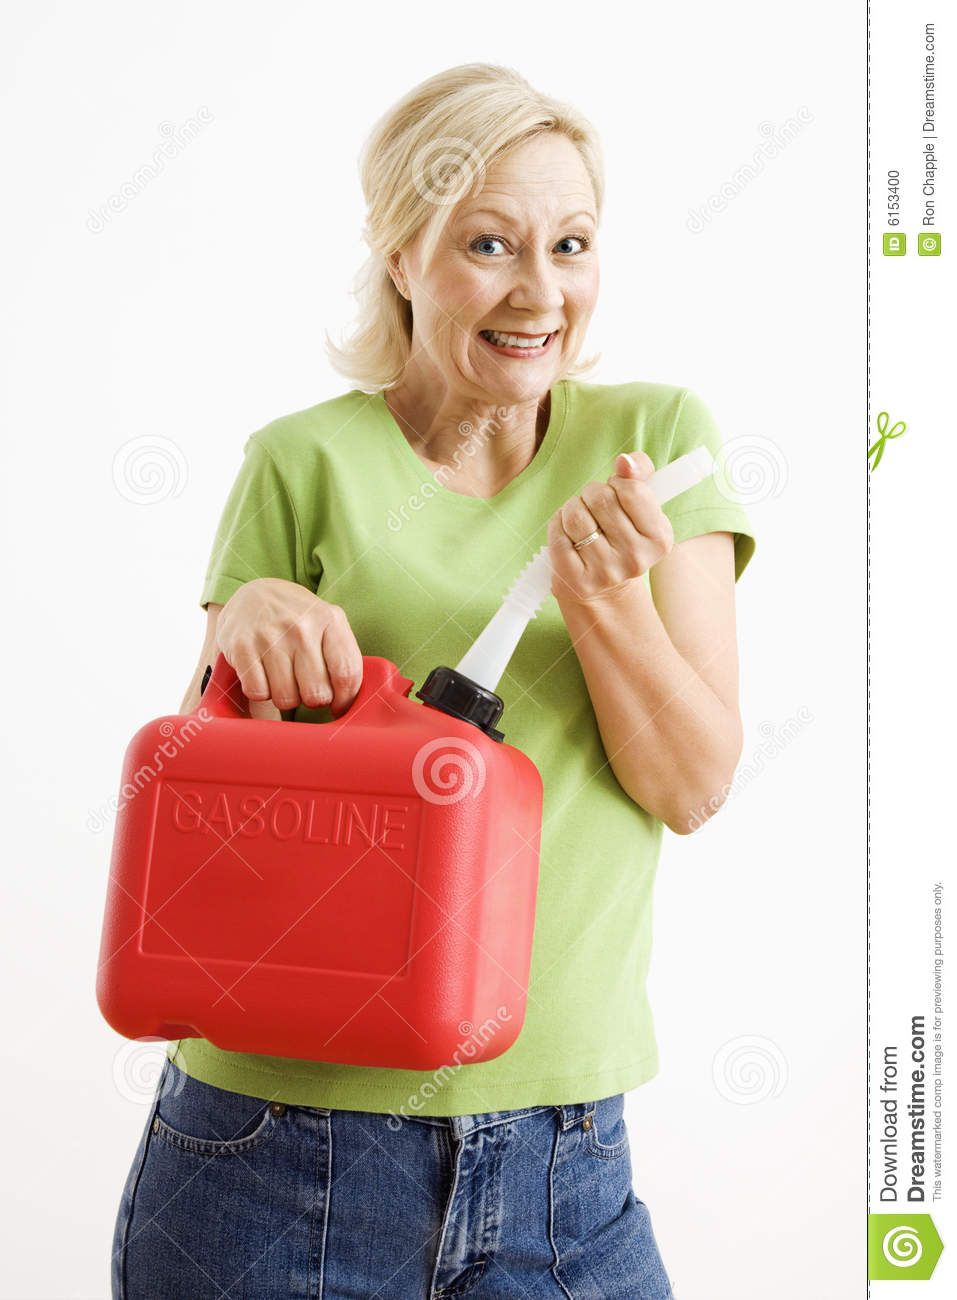 Woman with gas can.